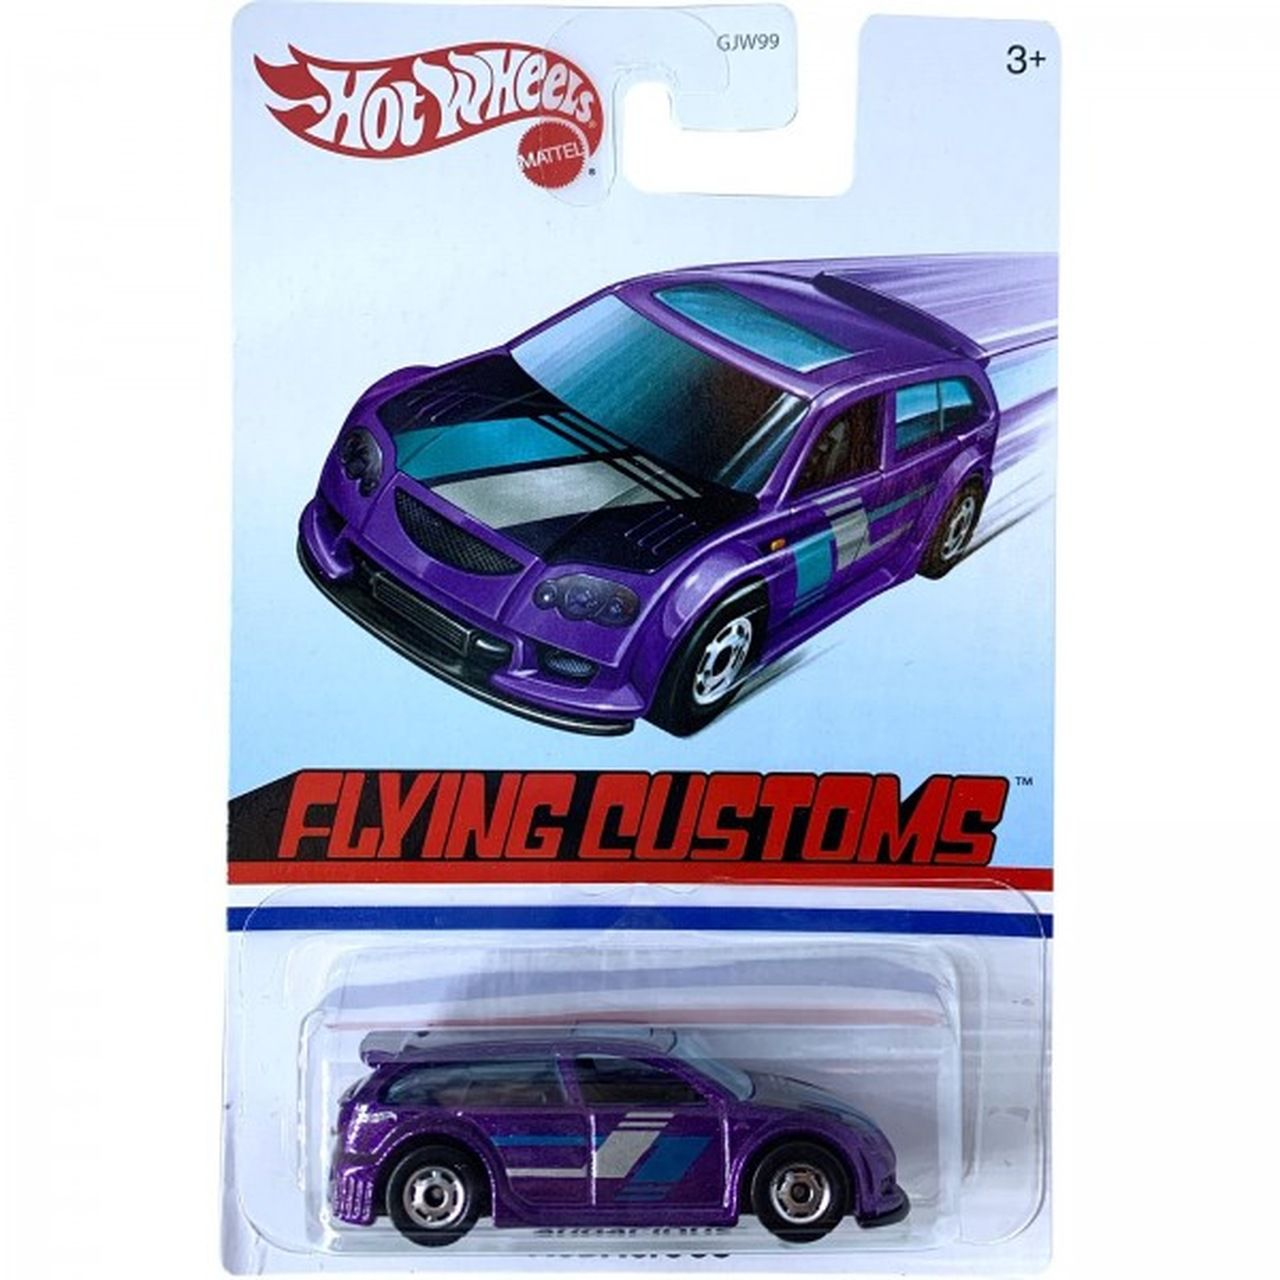 Carrinho Audacious (Flying Customs) GJW99 - Hot Wheels